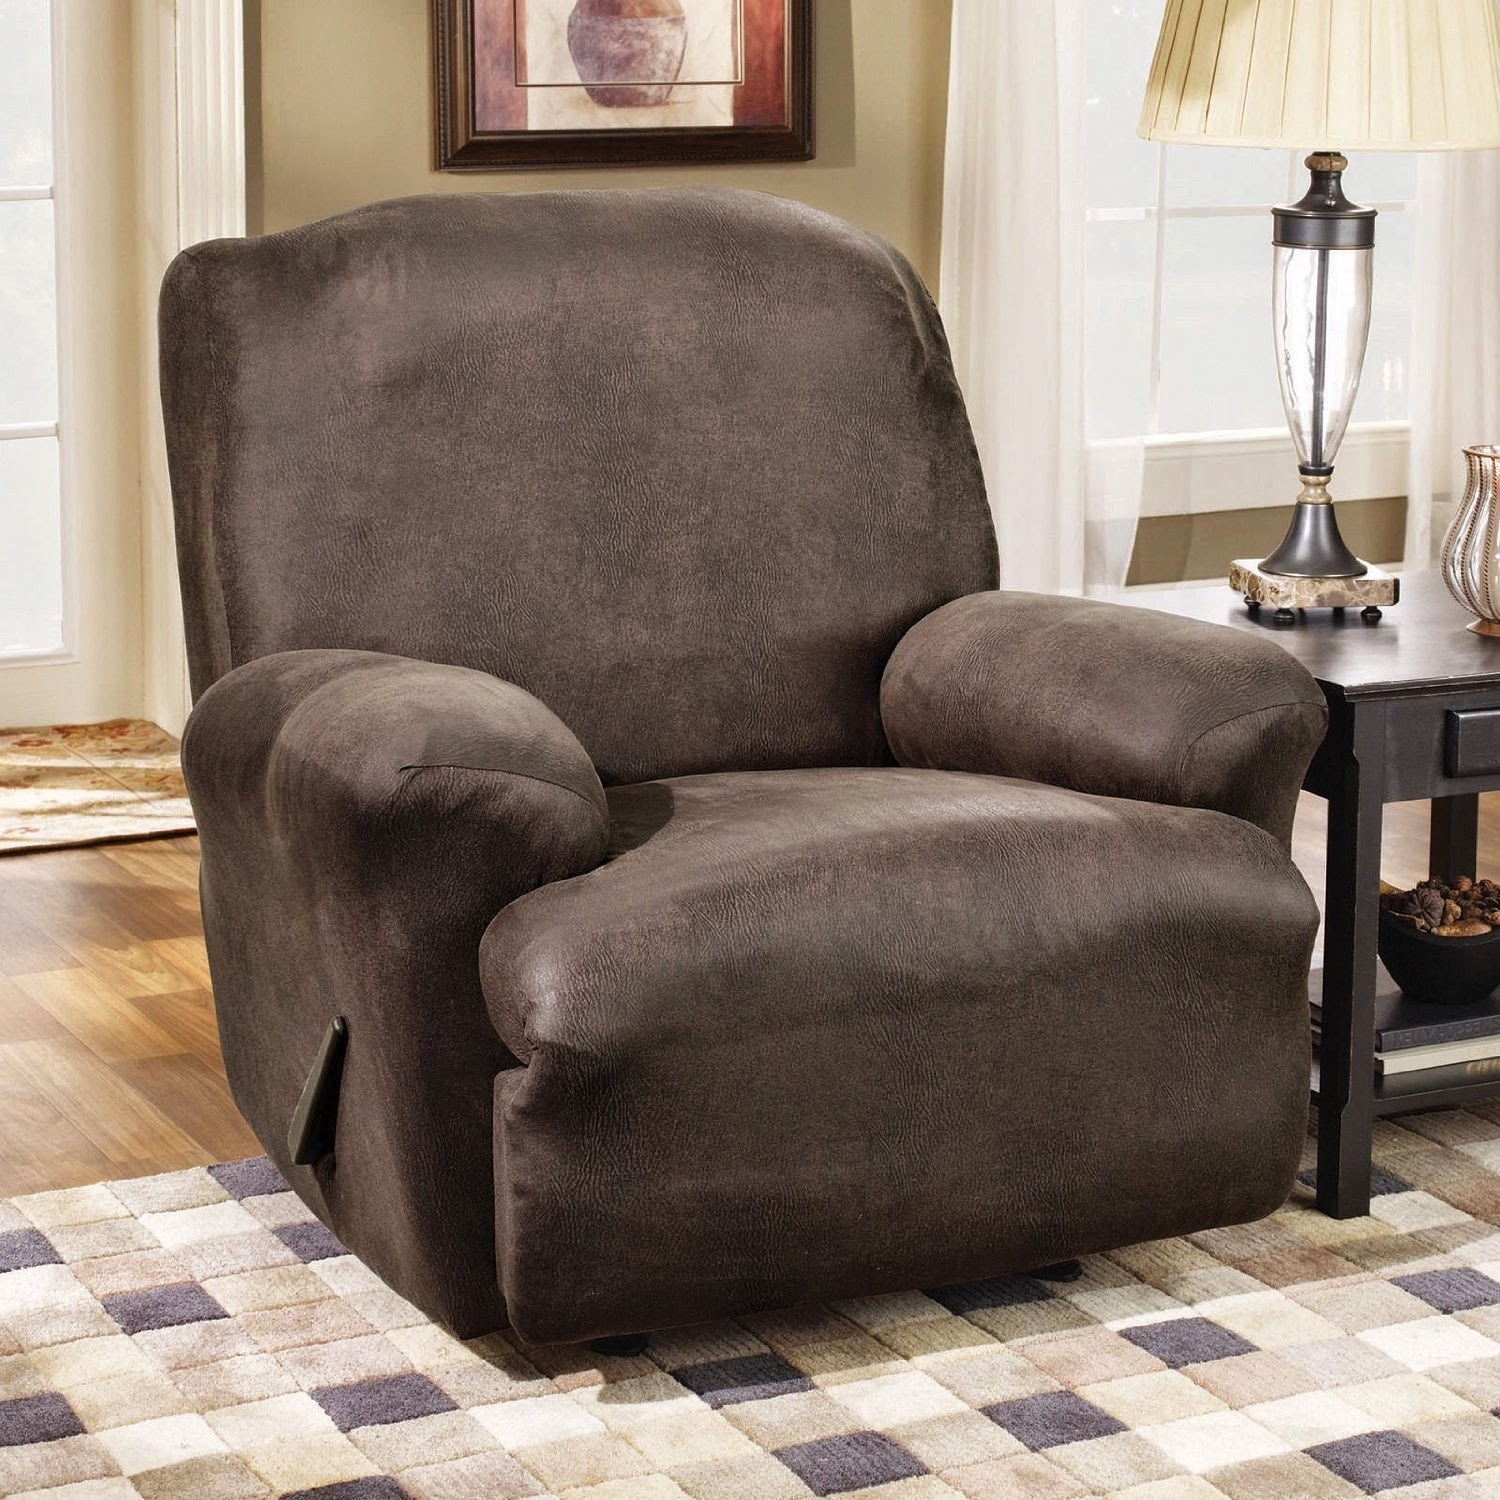 Cheap recliner sofas for sale sure fit dual reclining sofa couch slipcover Reclining loveseat sale